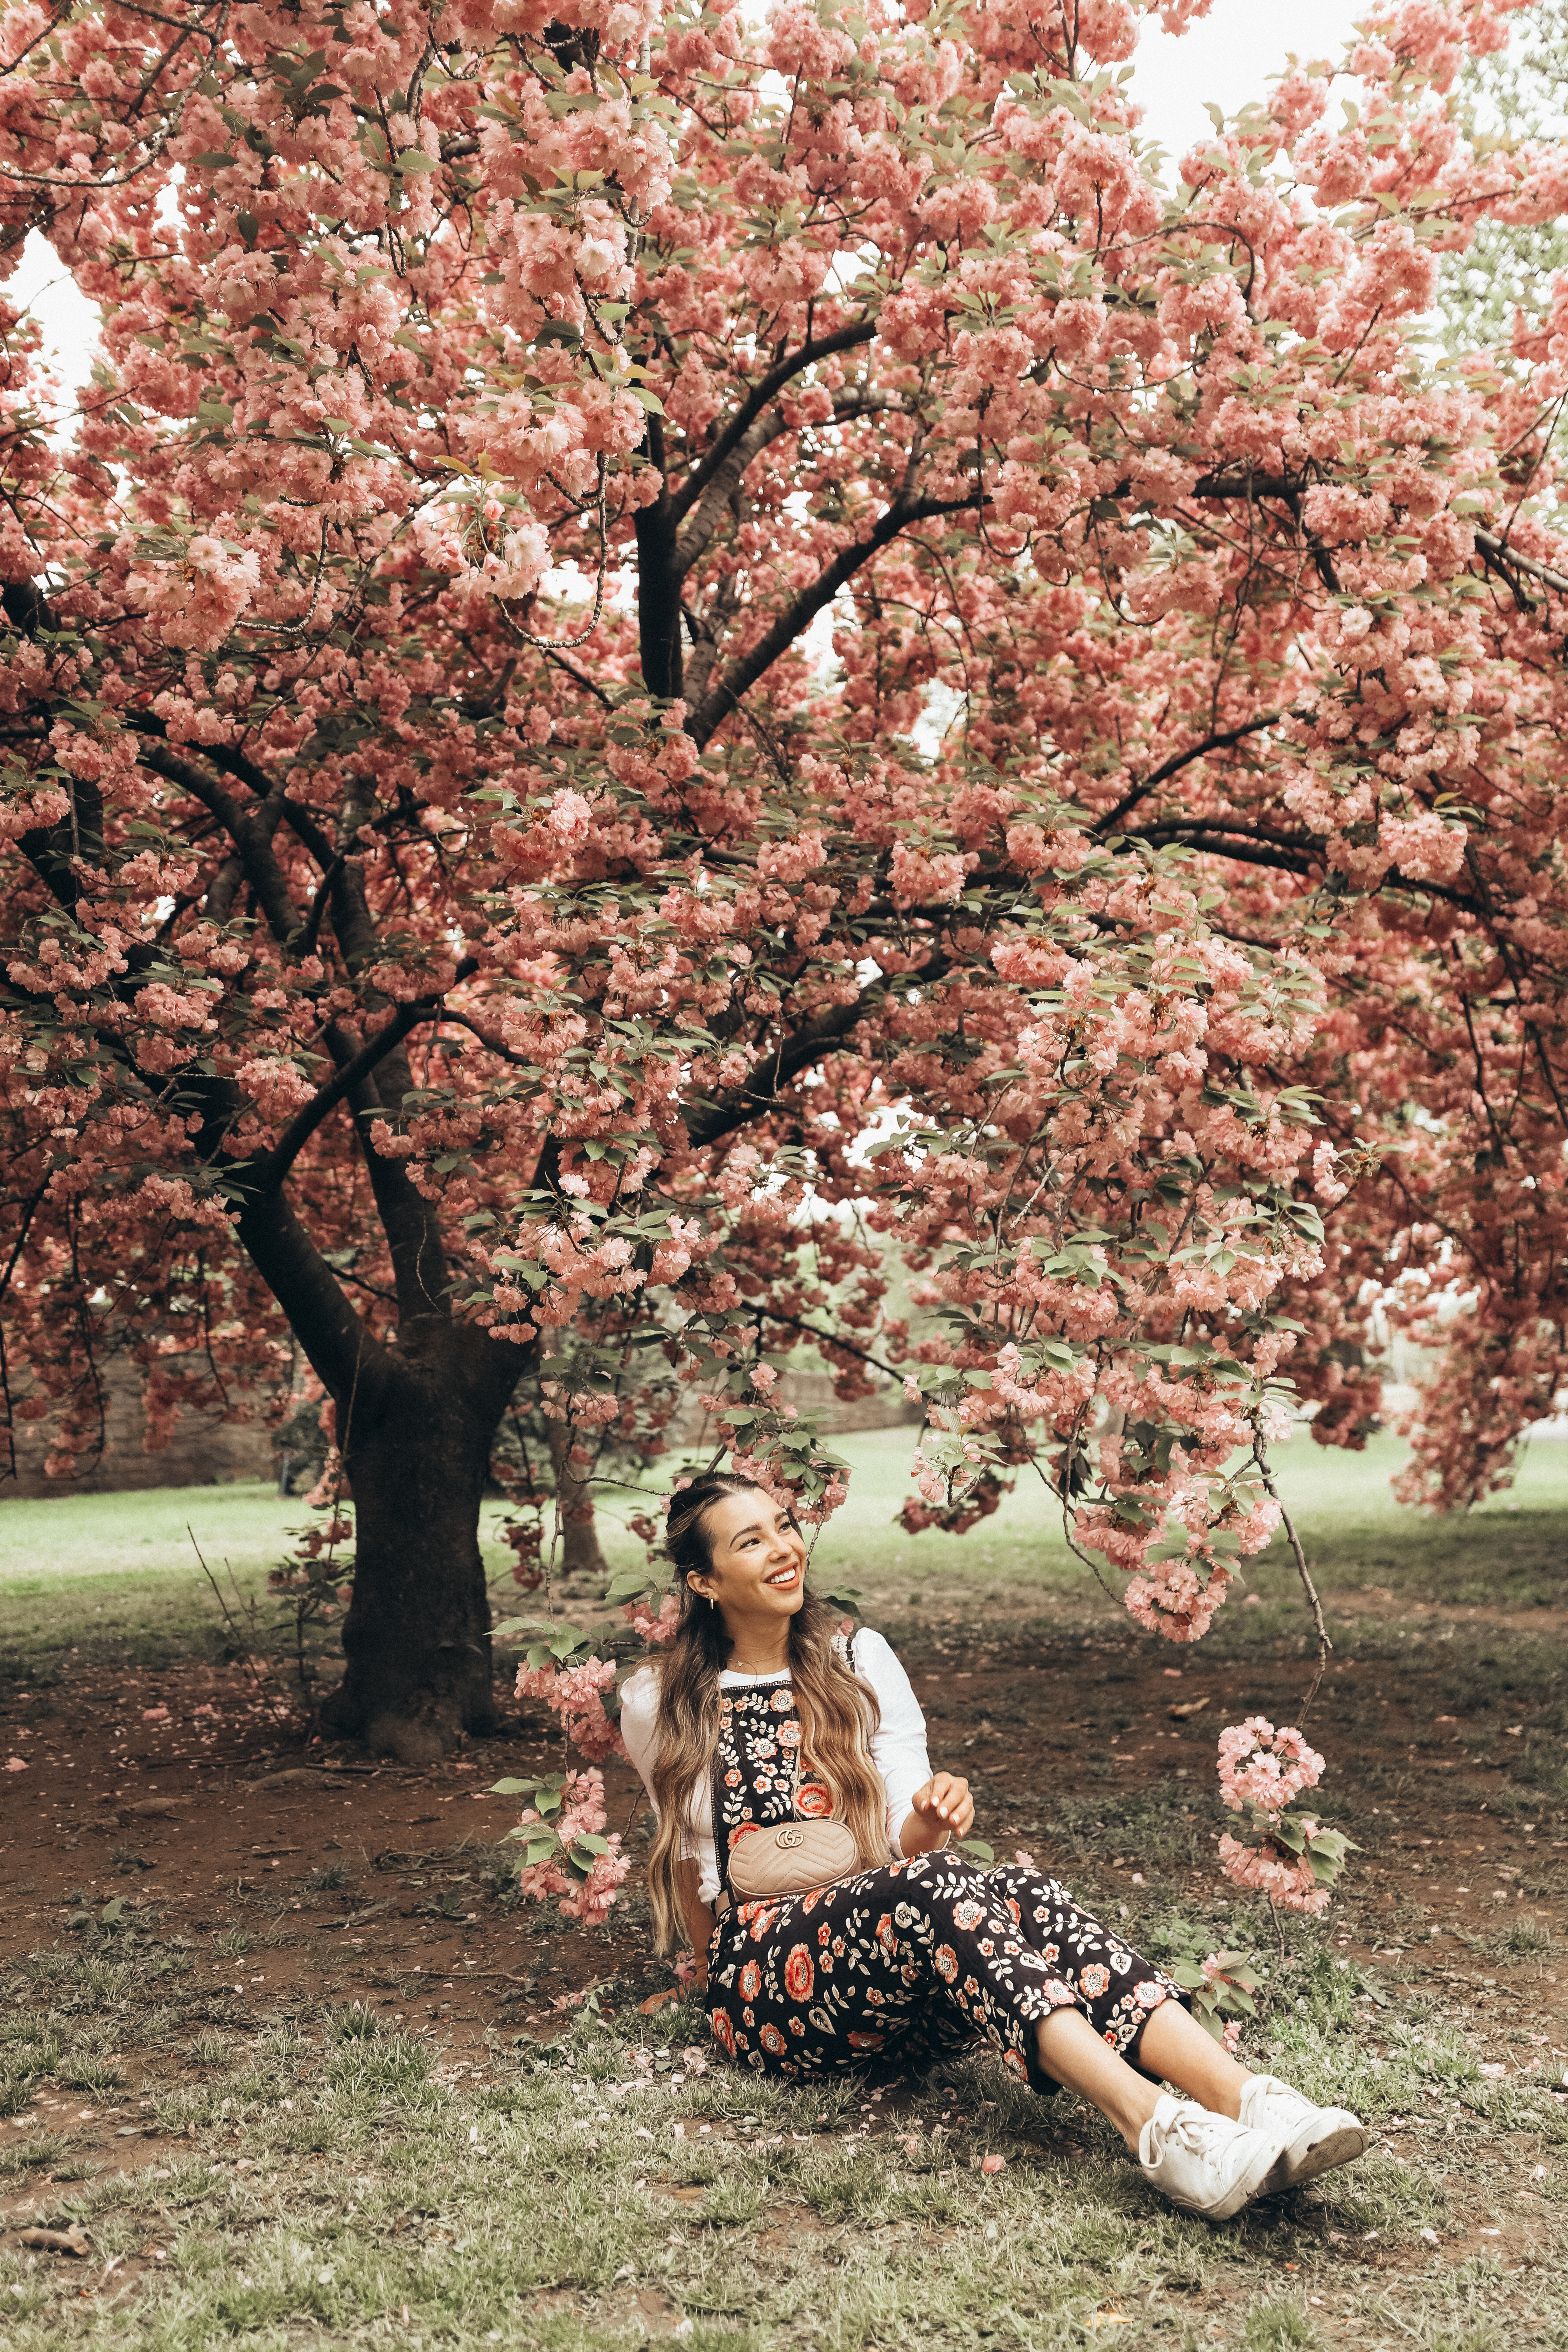 Becca Robson is under a cherry blossom tree